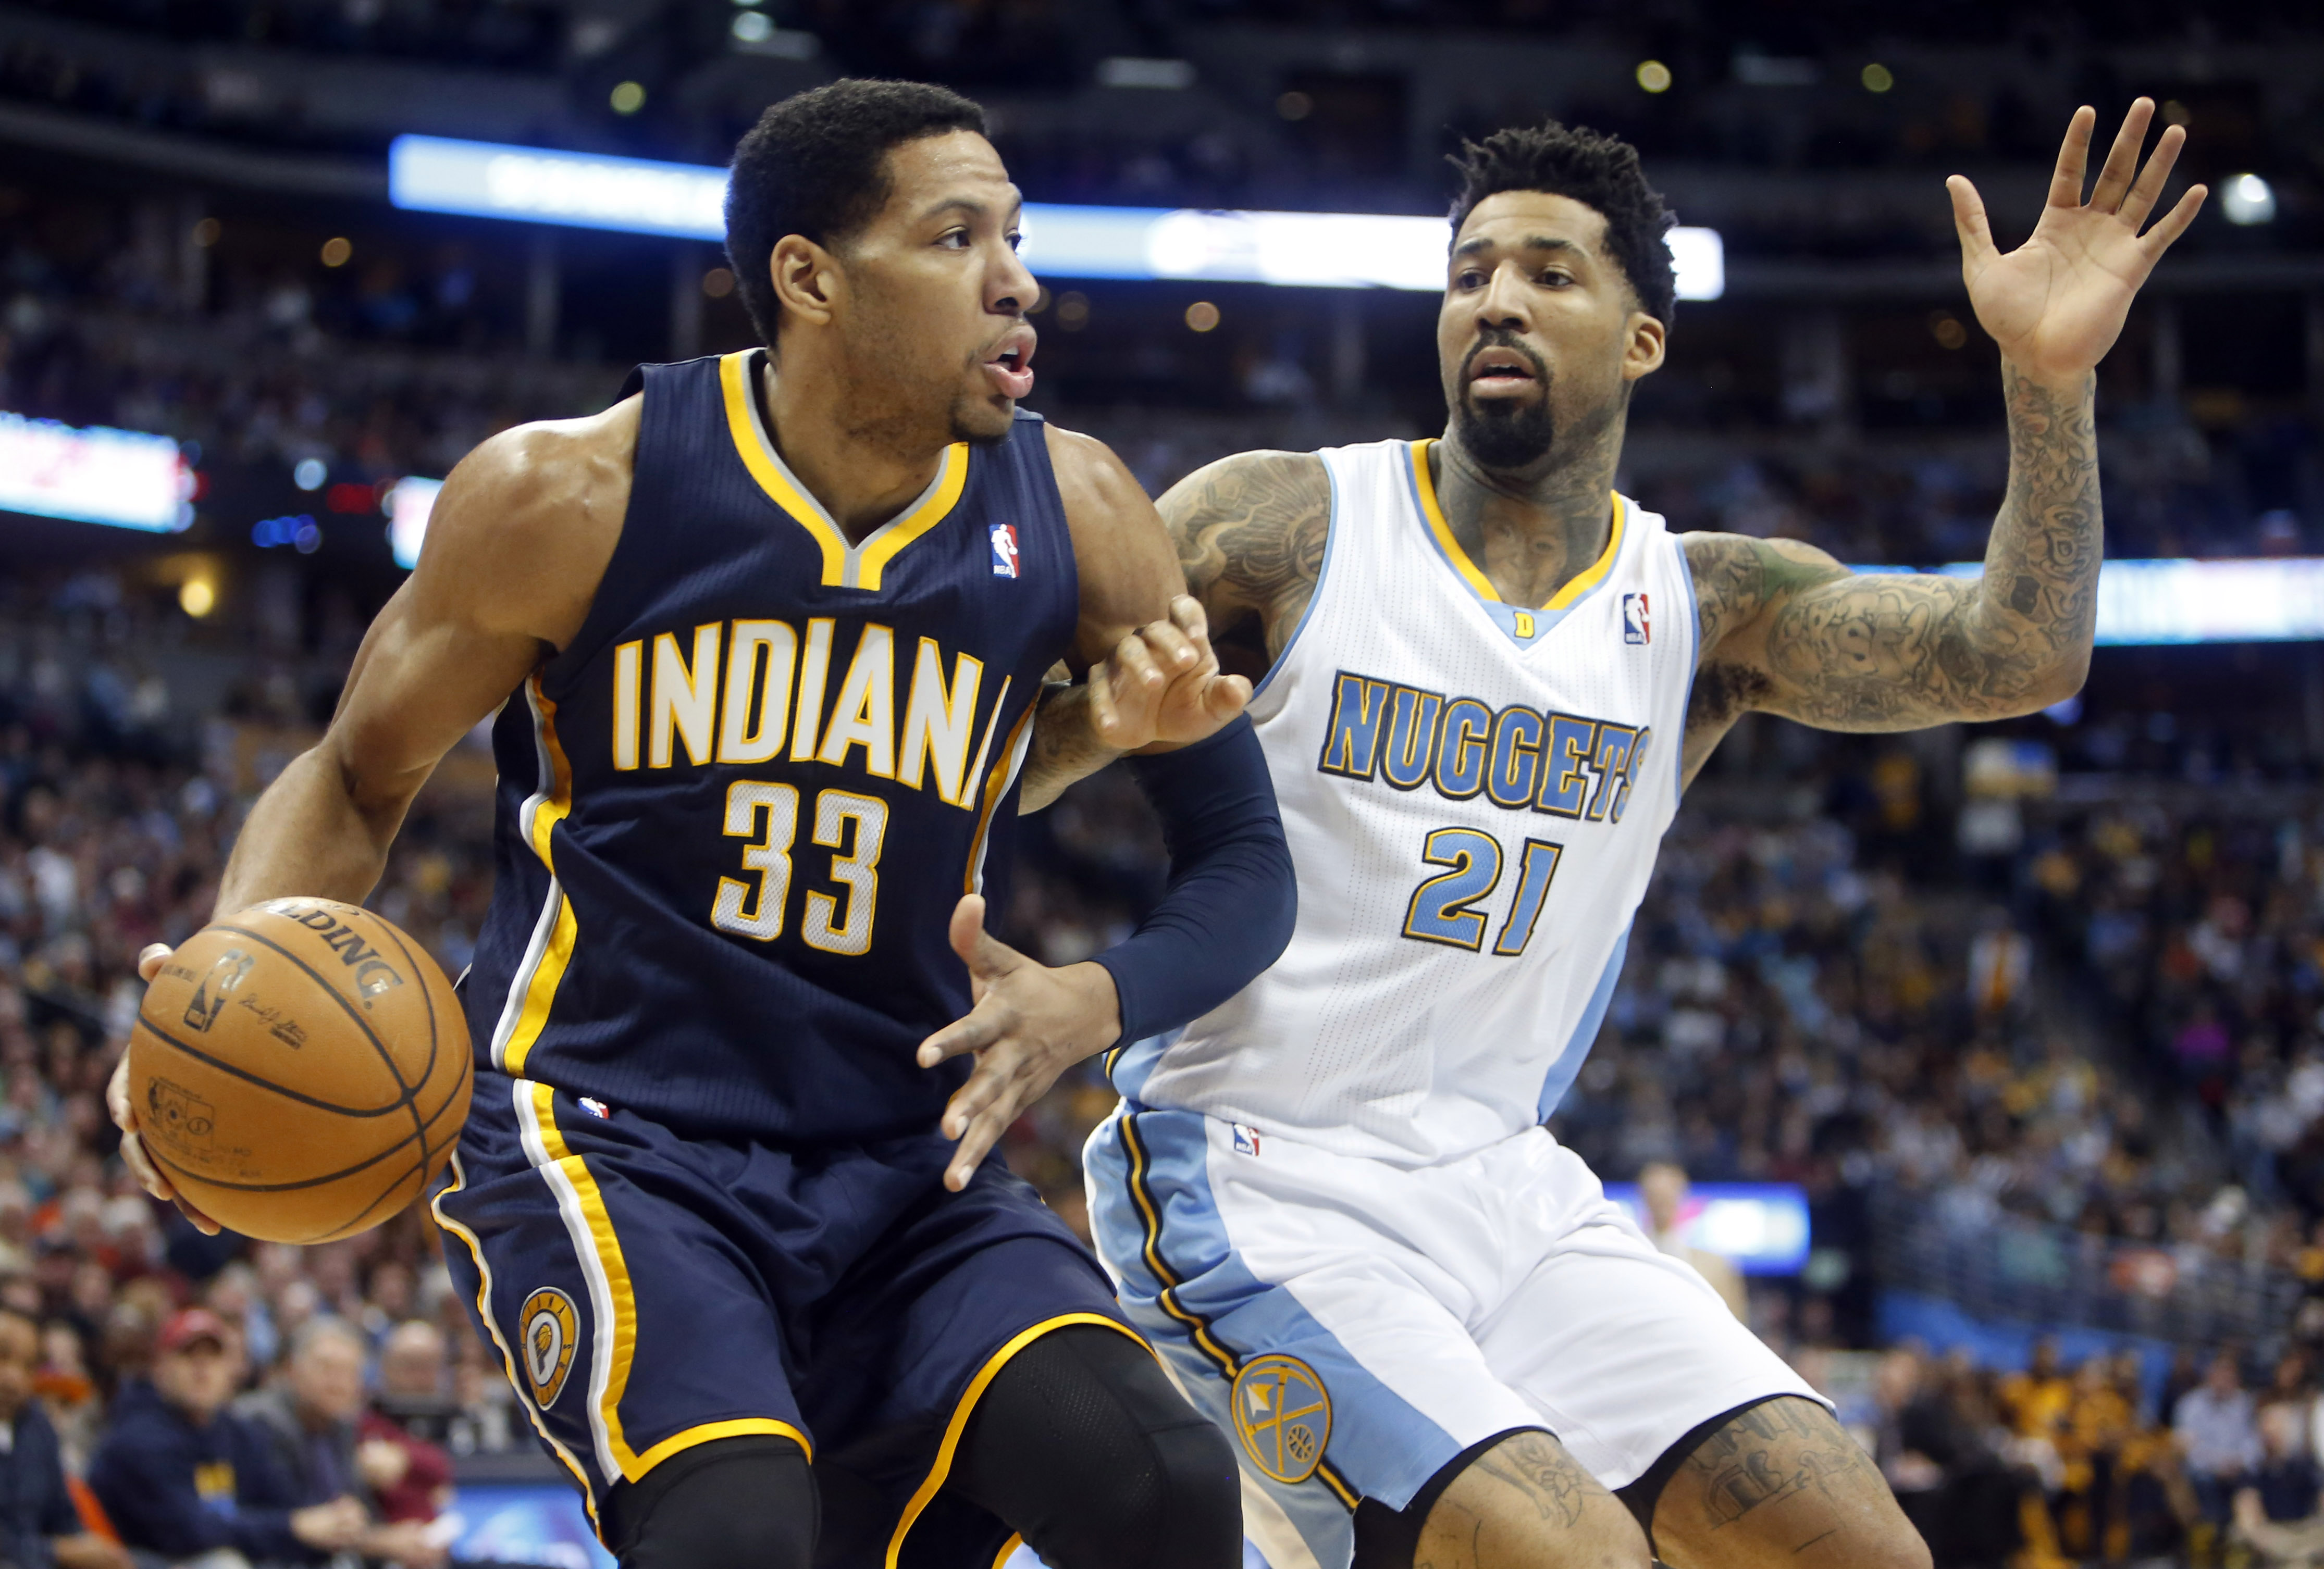 Indiana Pacers Top 10 NBA Draft picks in franchise history